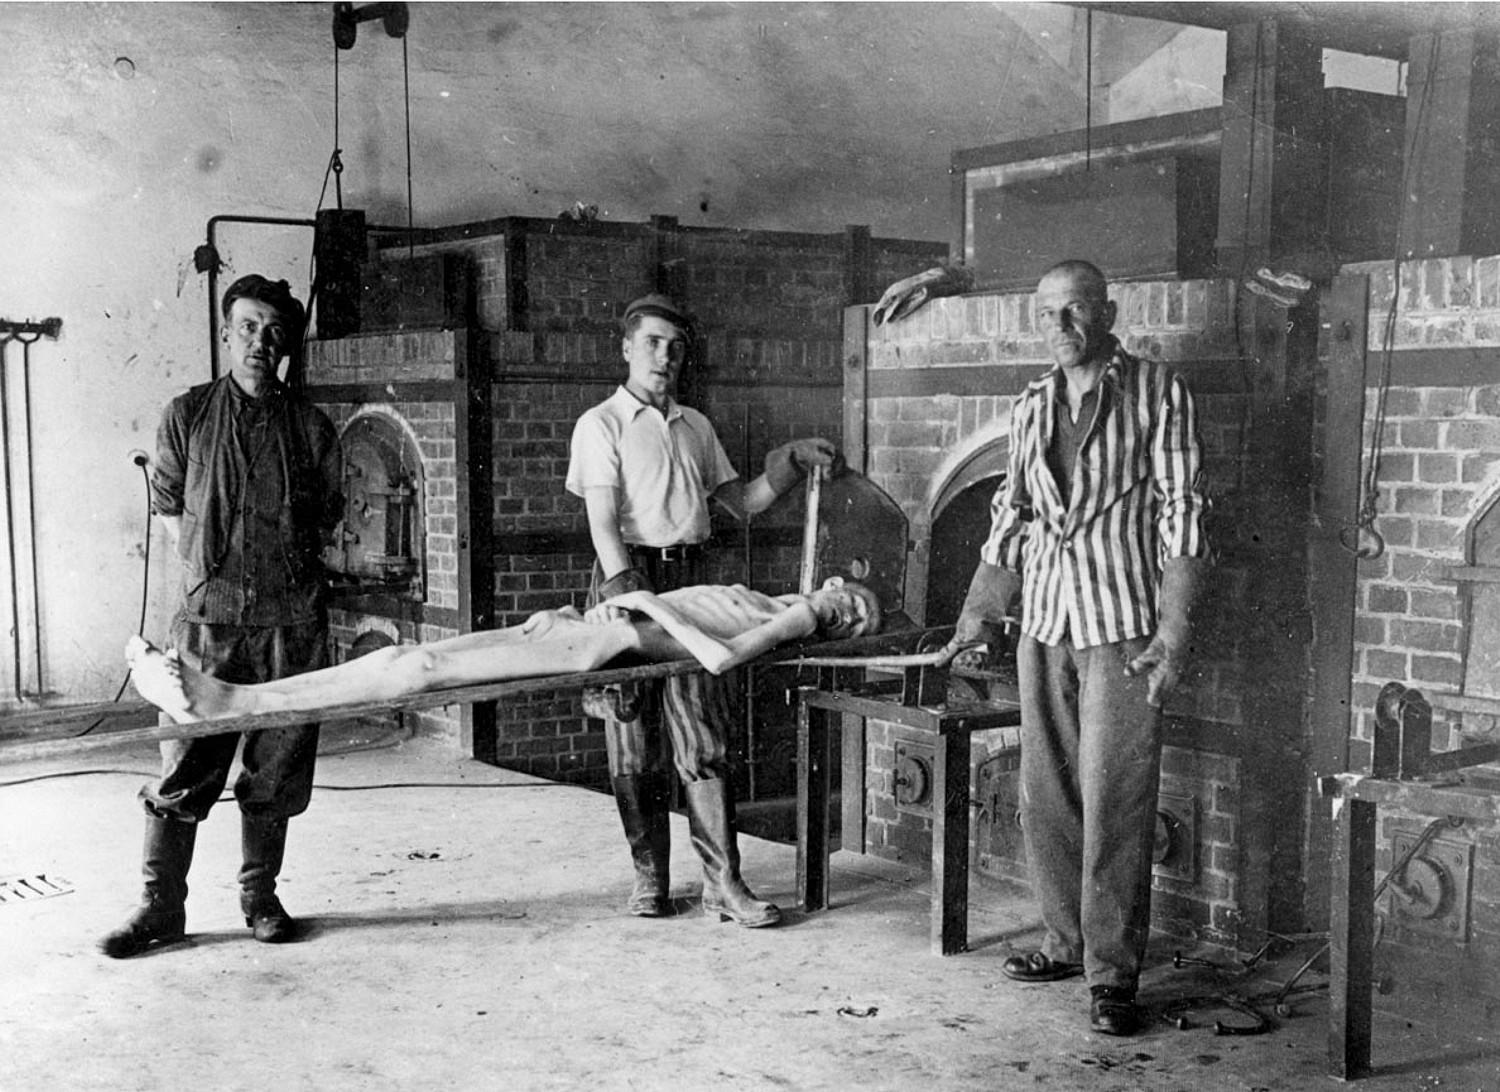 [Survivors of the Dachau concentration camp demonstrate the operation of the crematorium by pushing a corpse into one of the ovens. Dachau, Germany, April 29-May 10, 1945.]